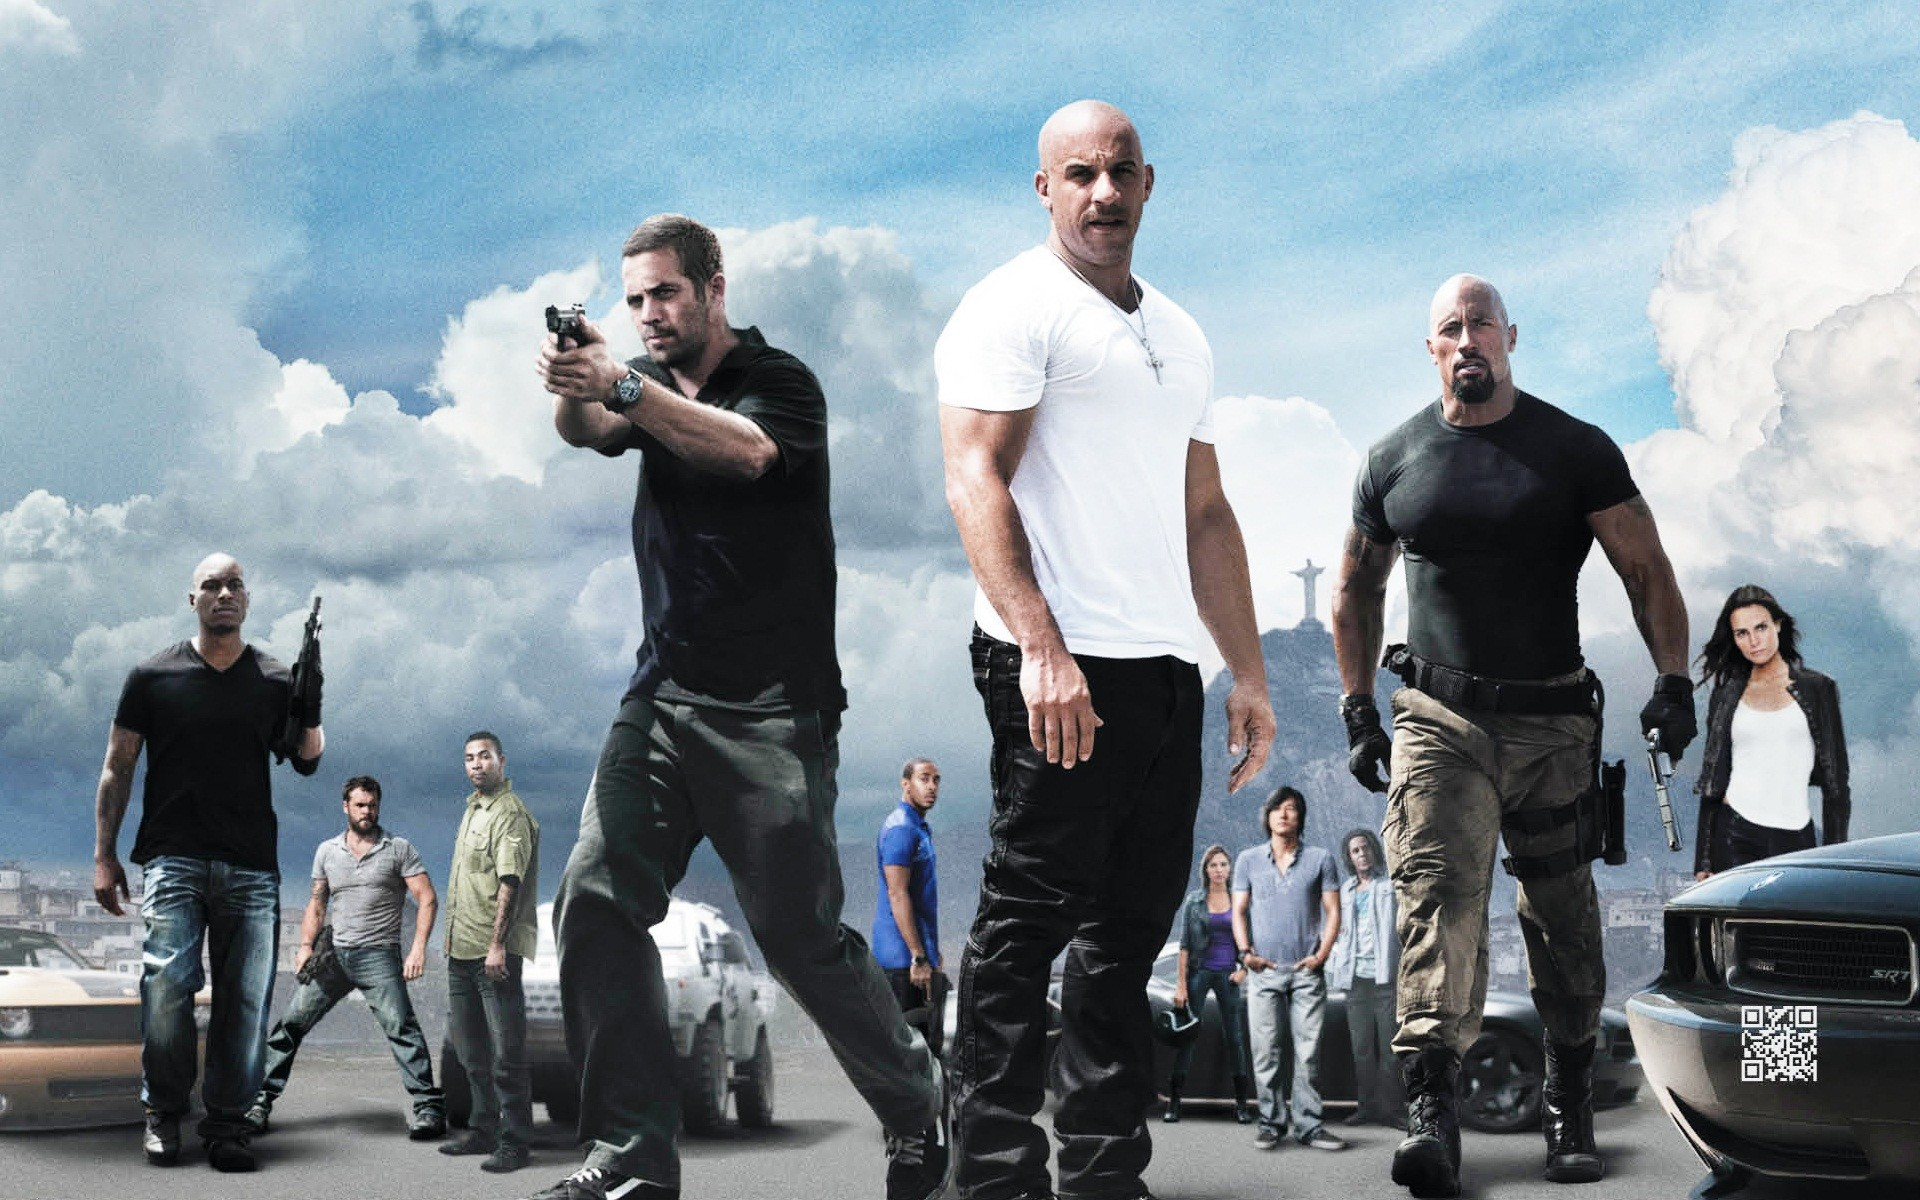 Fast And Furious 6 Cars Hd Wallpaper The Fast And The Furious Wallpapers 68 Images